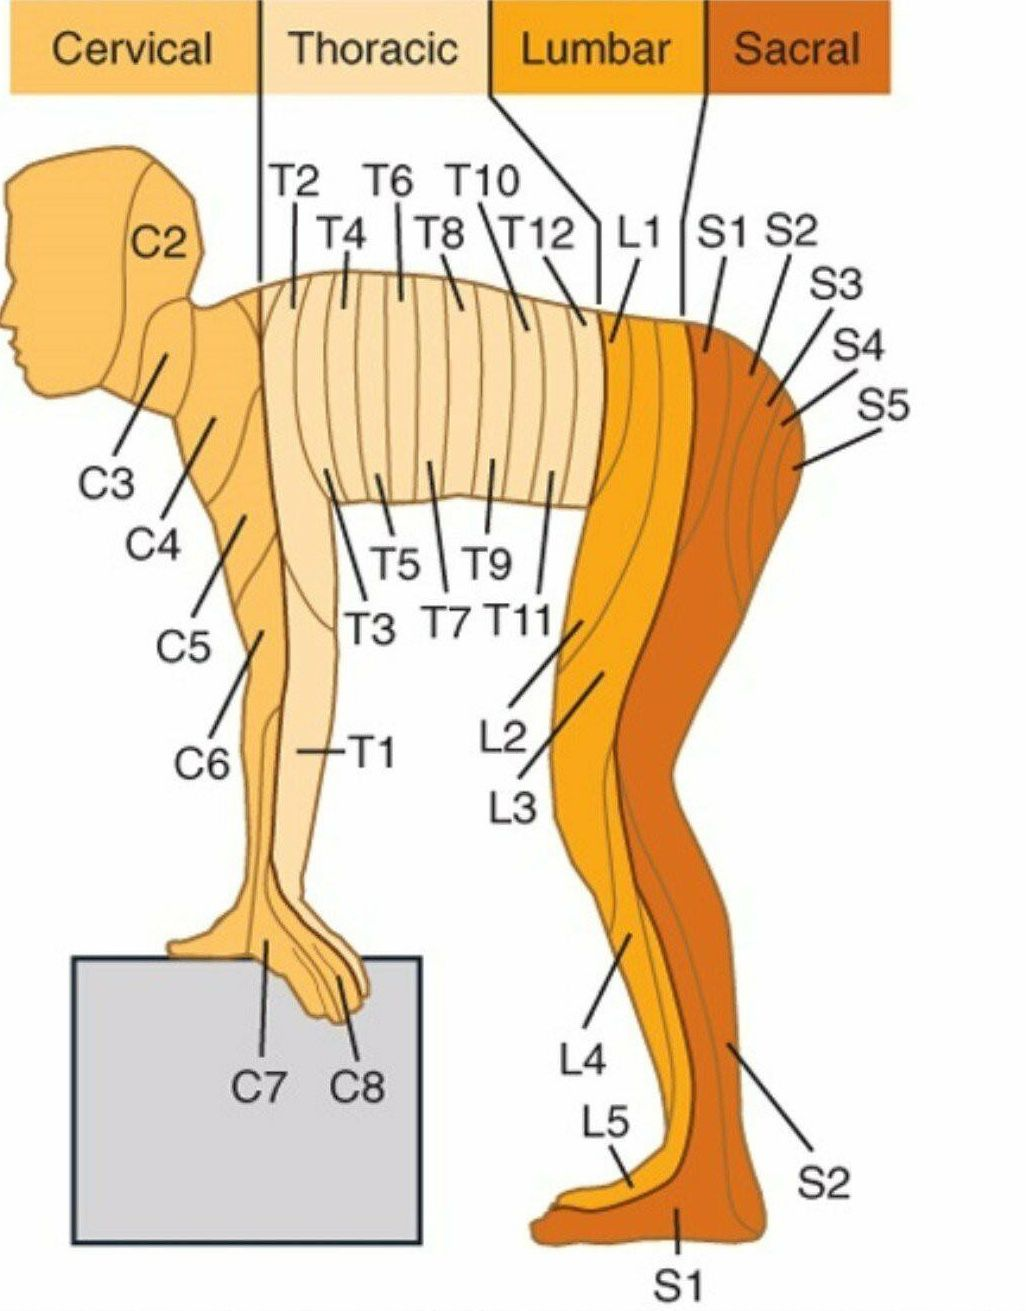 Cervical Thoracic Lumbar And Sacral Areas Use This Diagram To Help You Study The Different